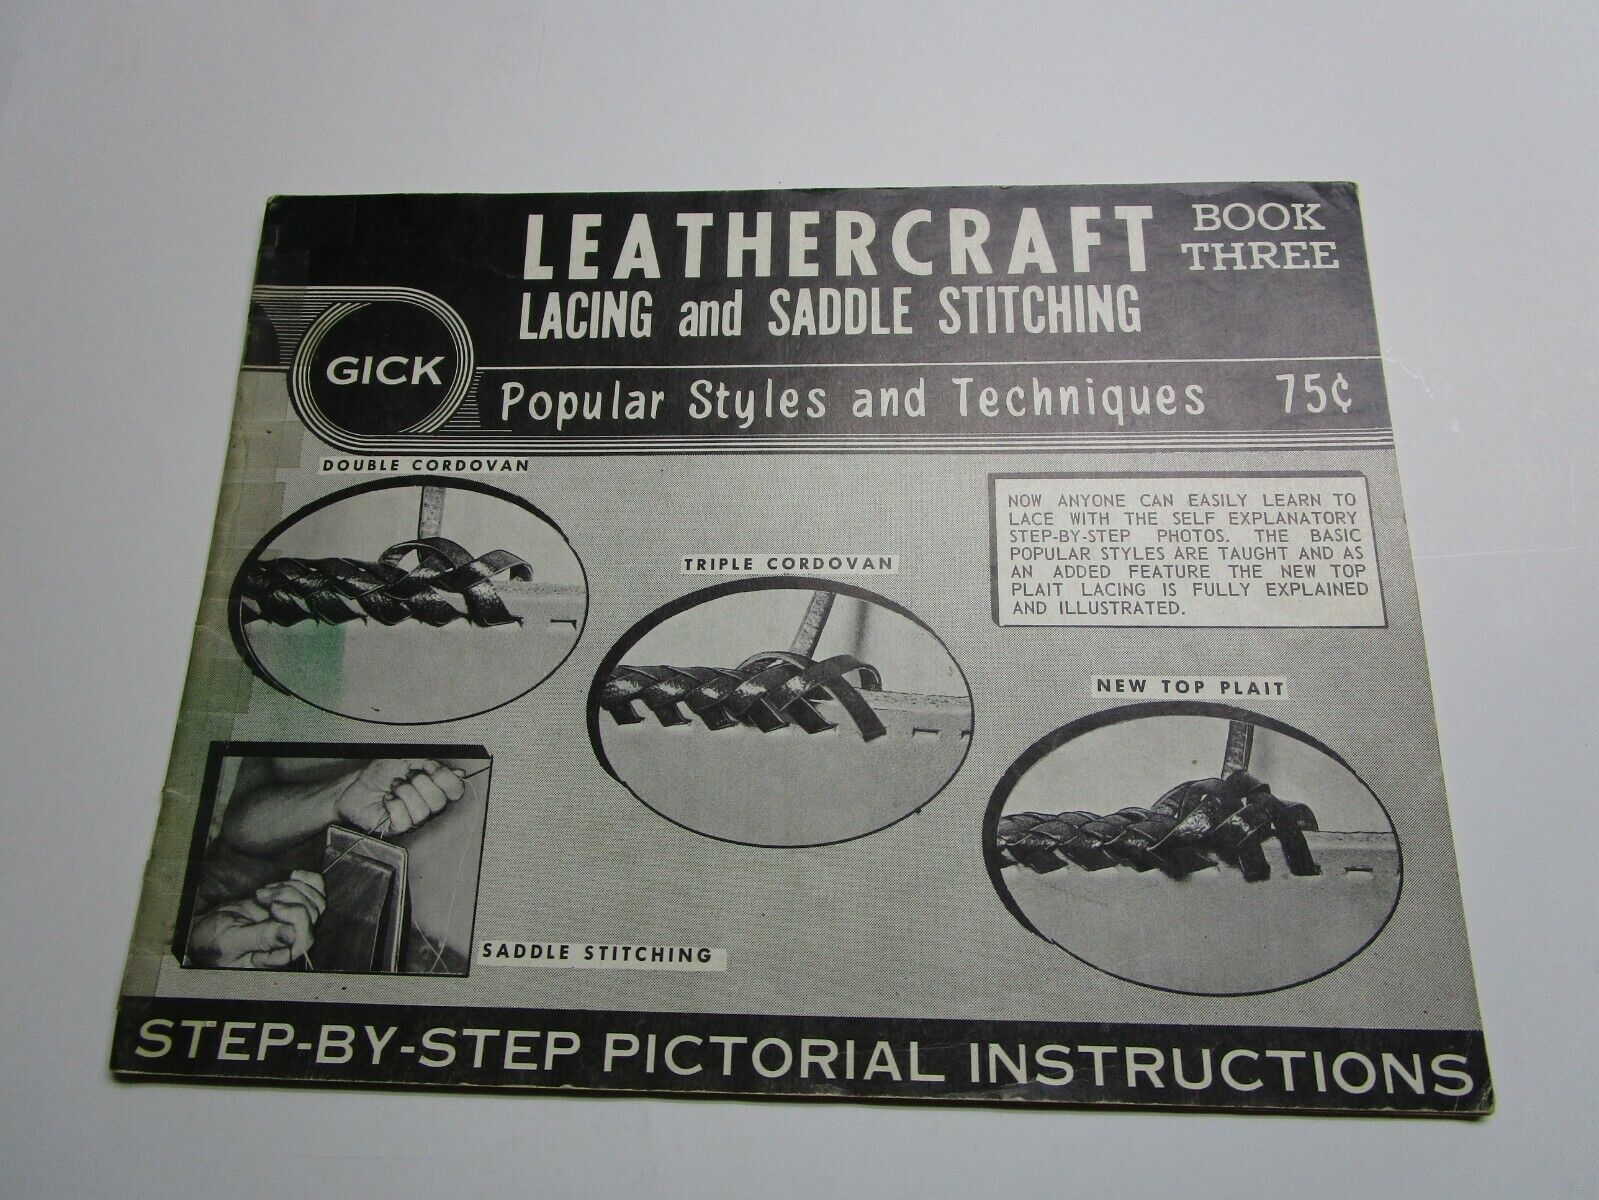 Vintage Leather Gick Lacing And Saddle Stitching Book Three. - $14.99